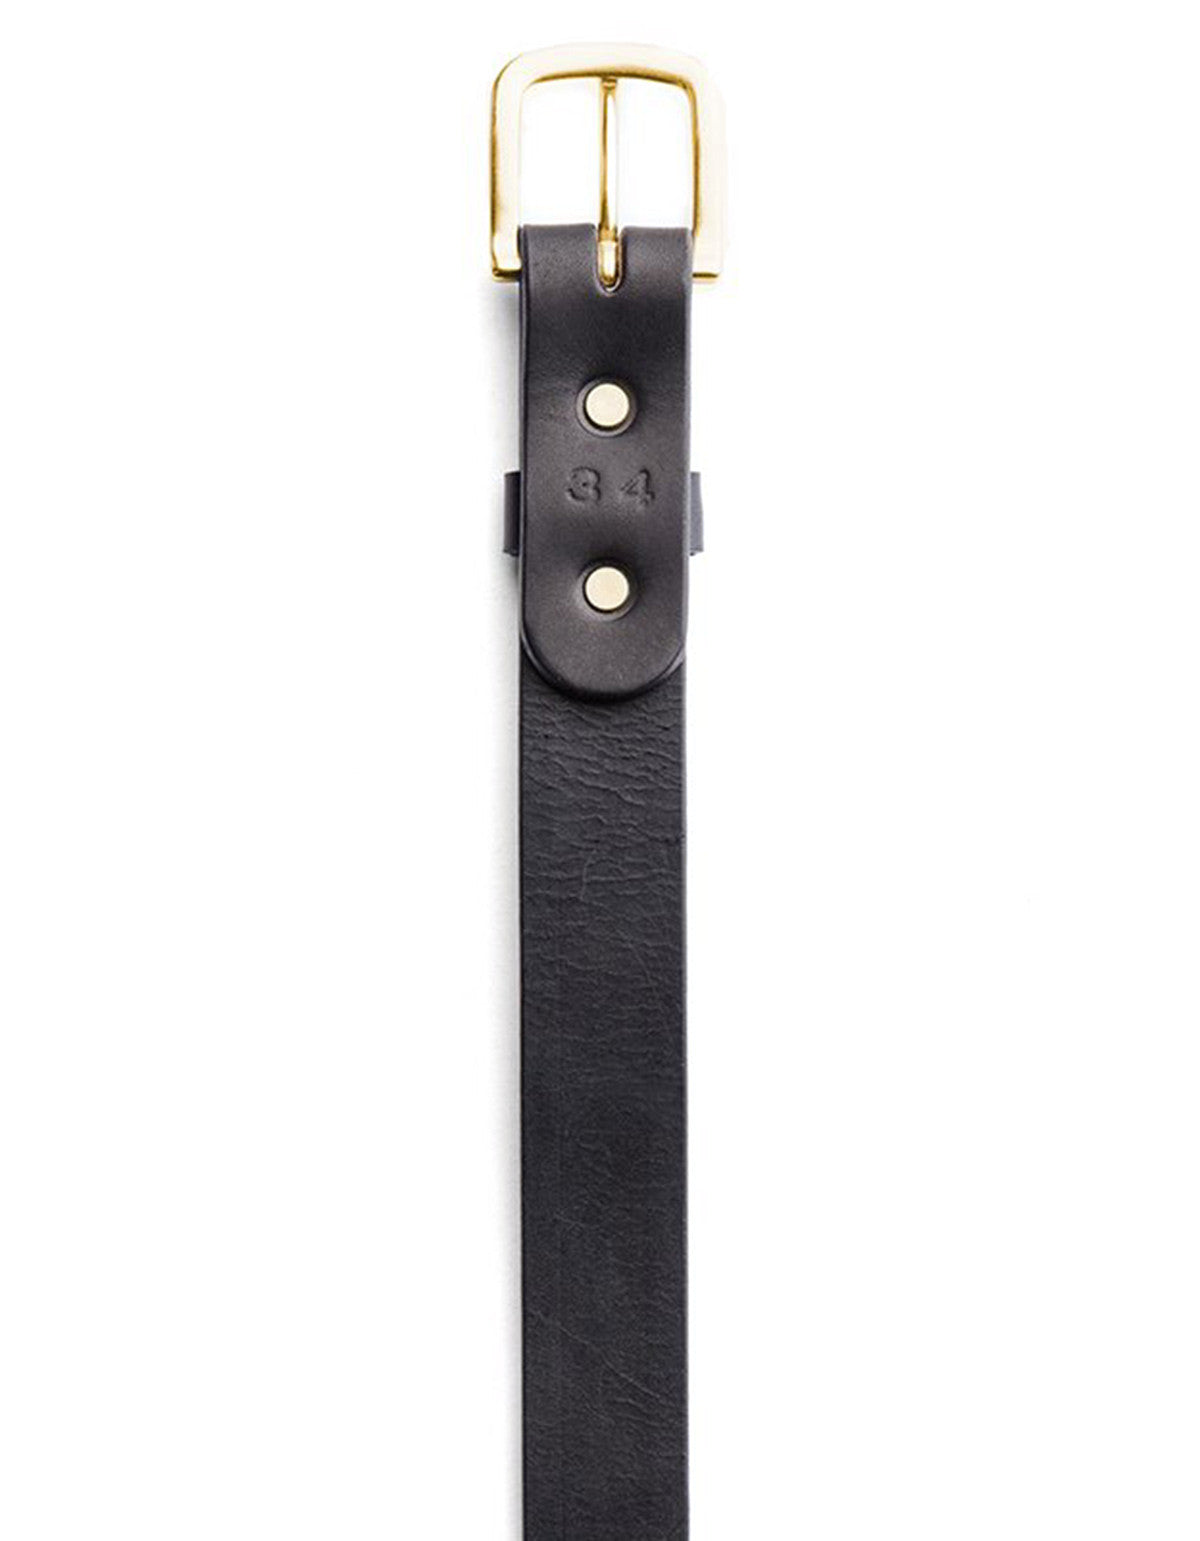 Tanner Goods Classic Belt Black Brass - Still Life - 3